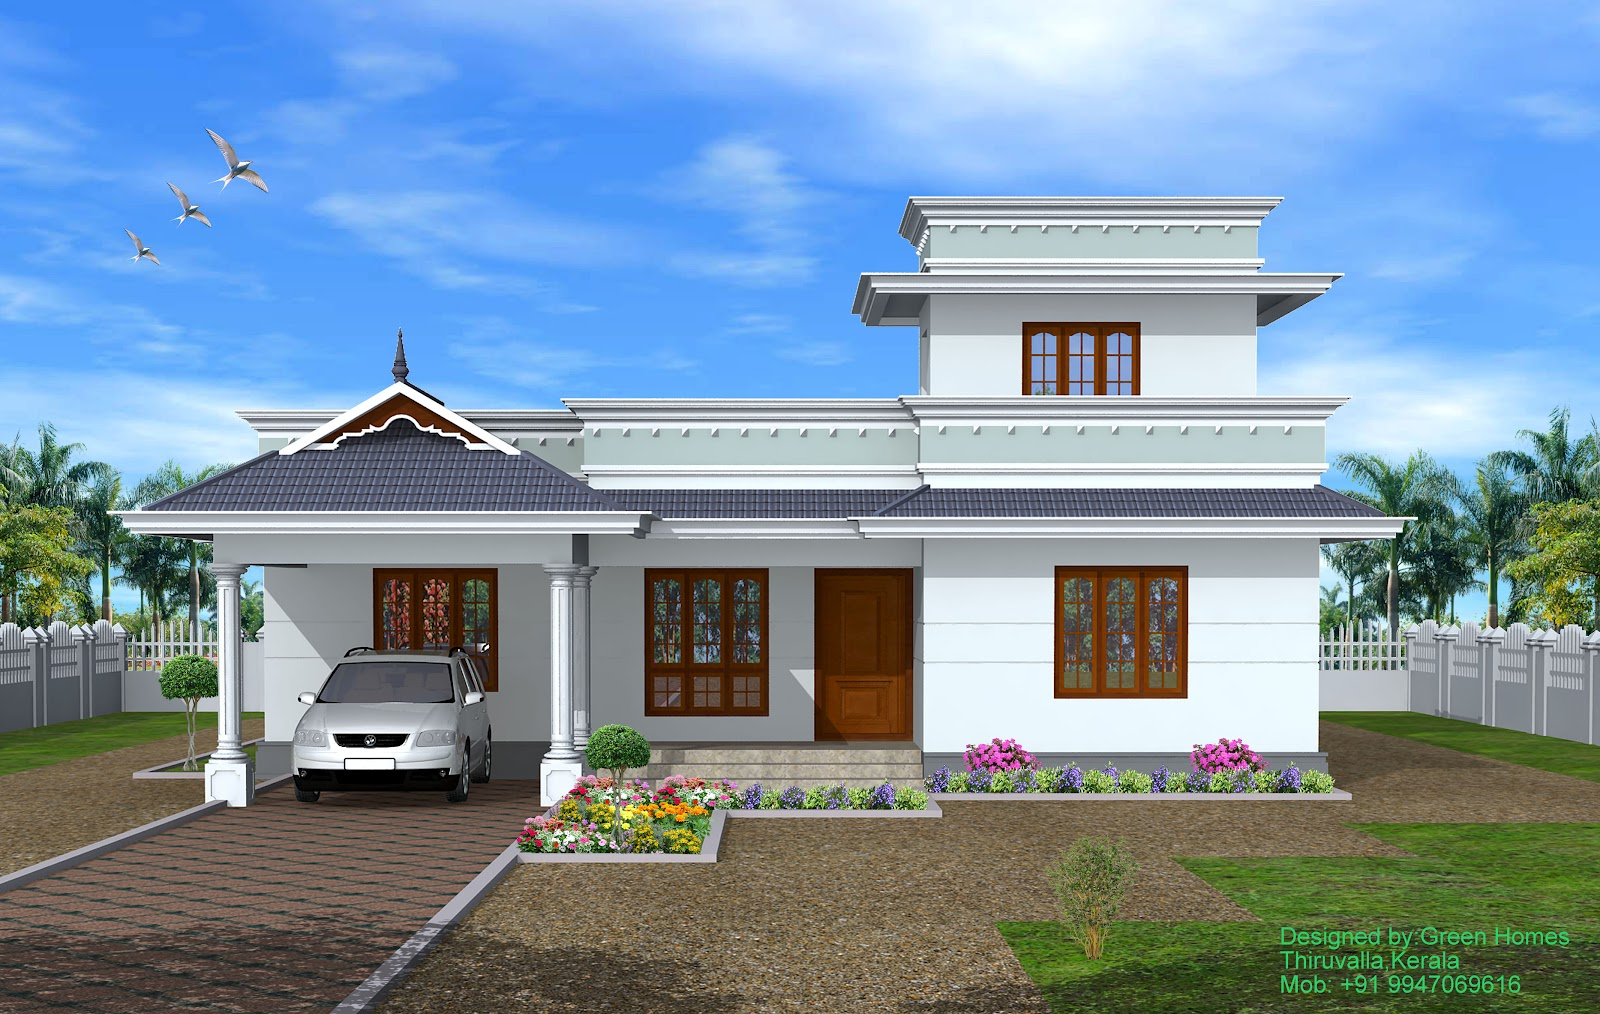 Green homes kerala 4 bhk single storey house 1950 for Single home design